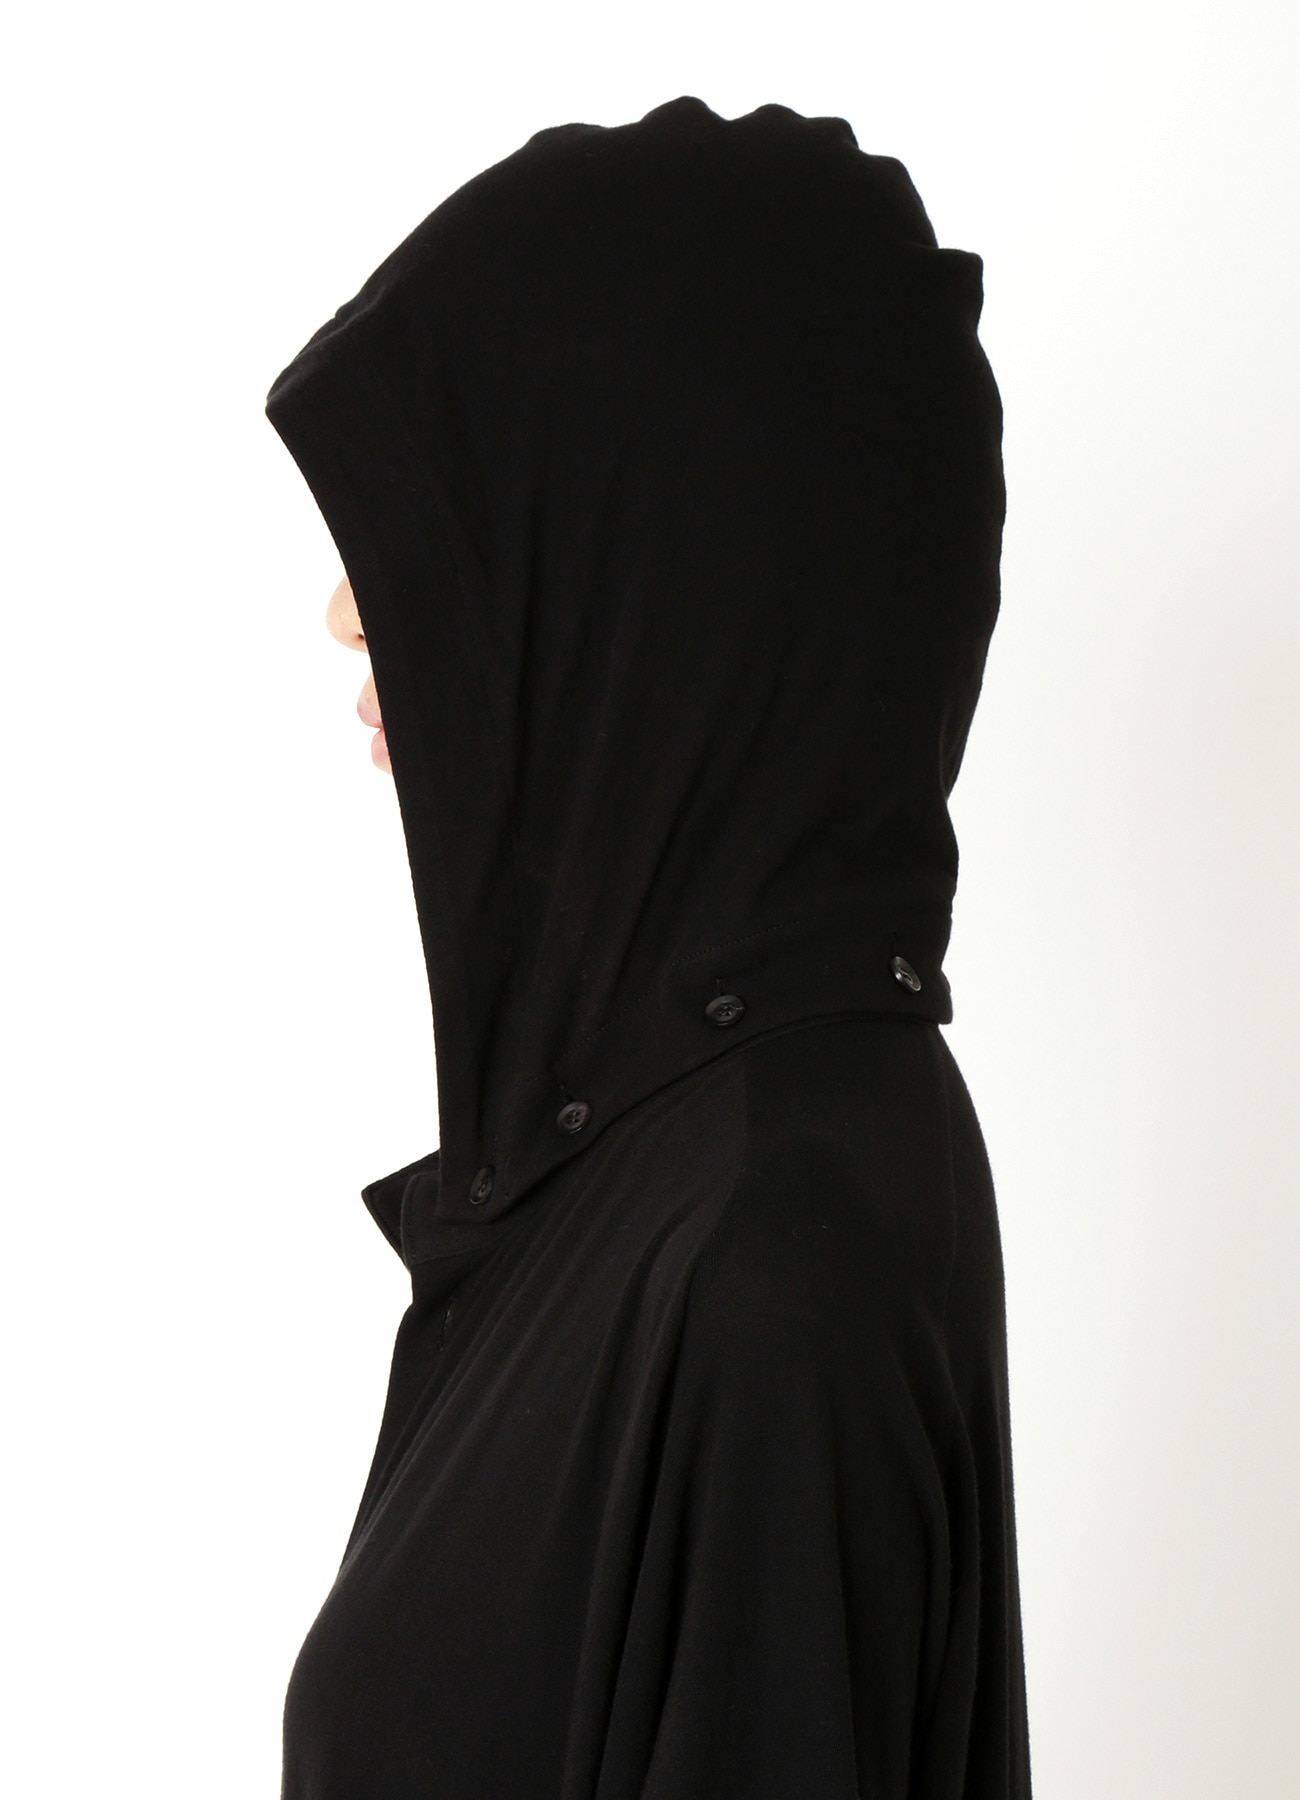 30 ULTIMA LOOSE DETACHABLE HOODED LD